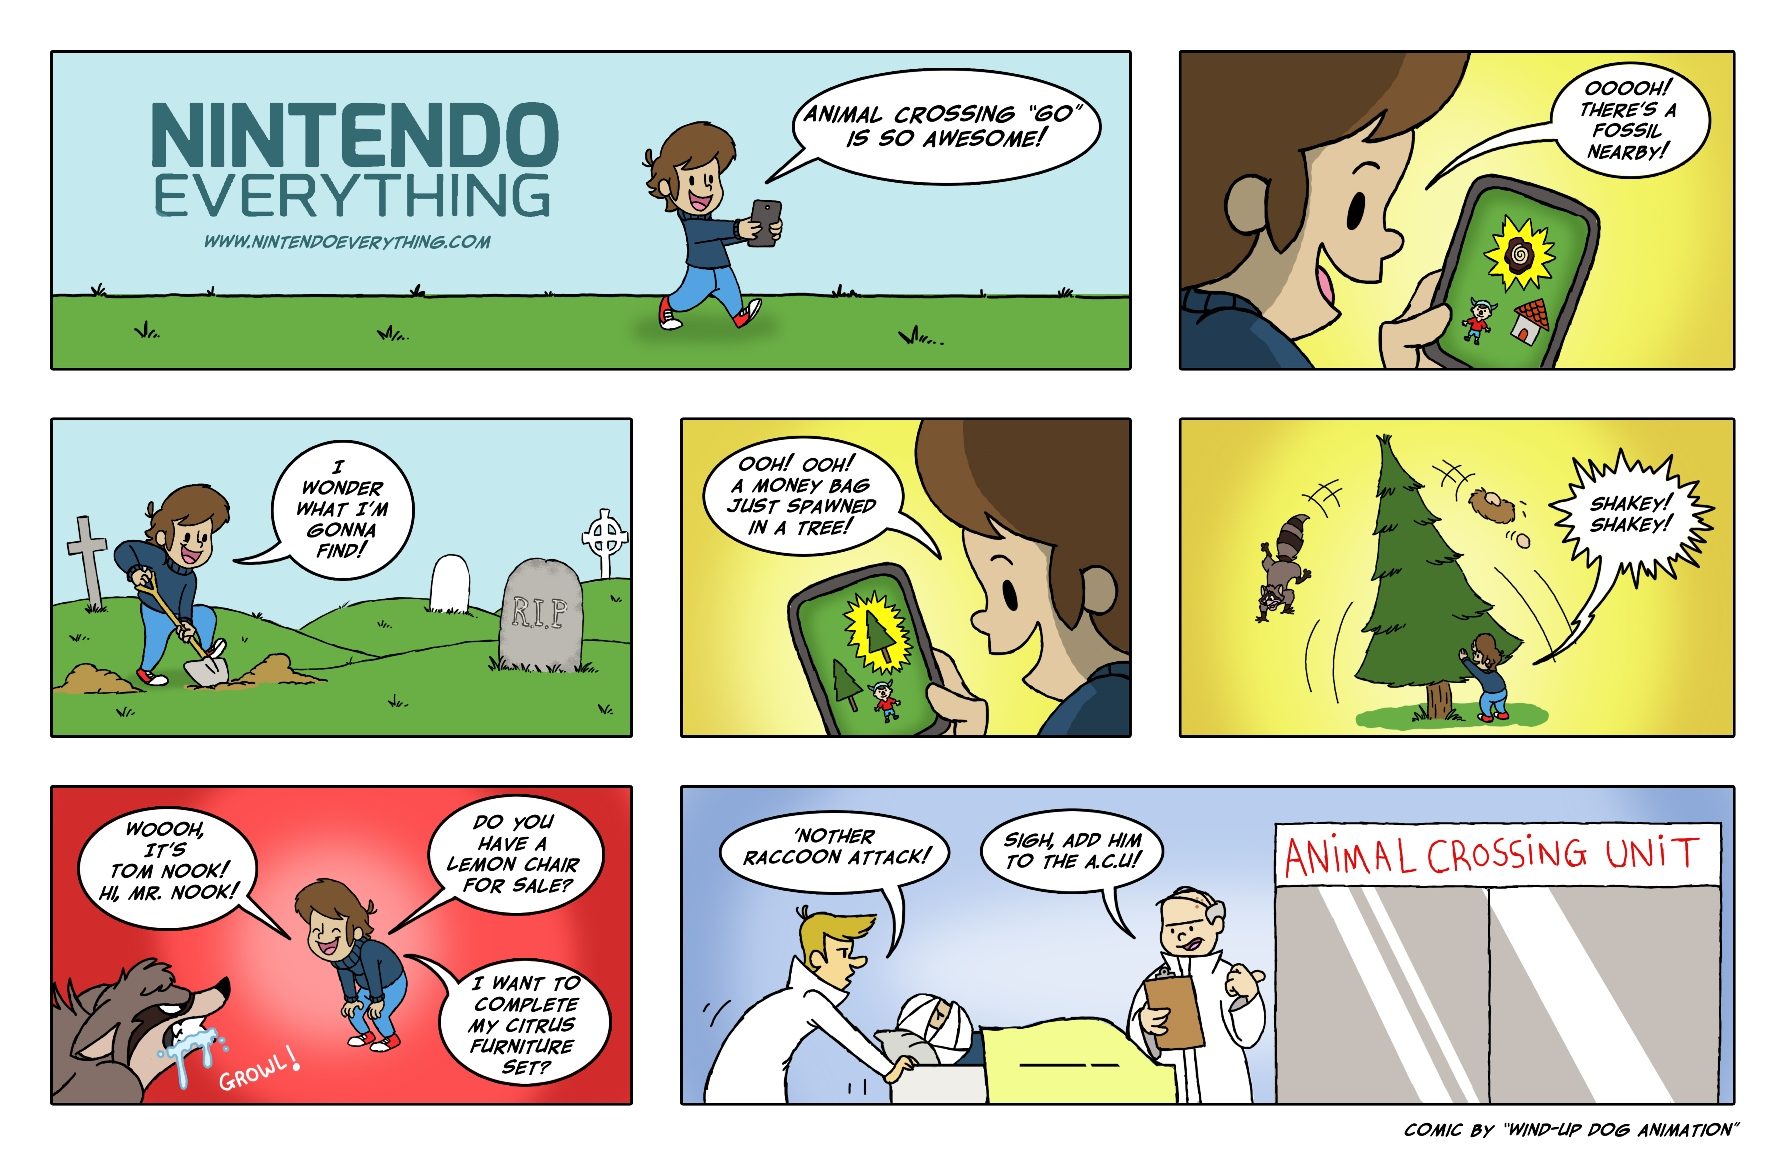 nintendo-everything-comic-15